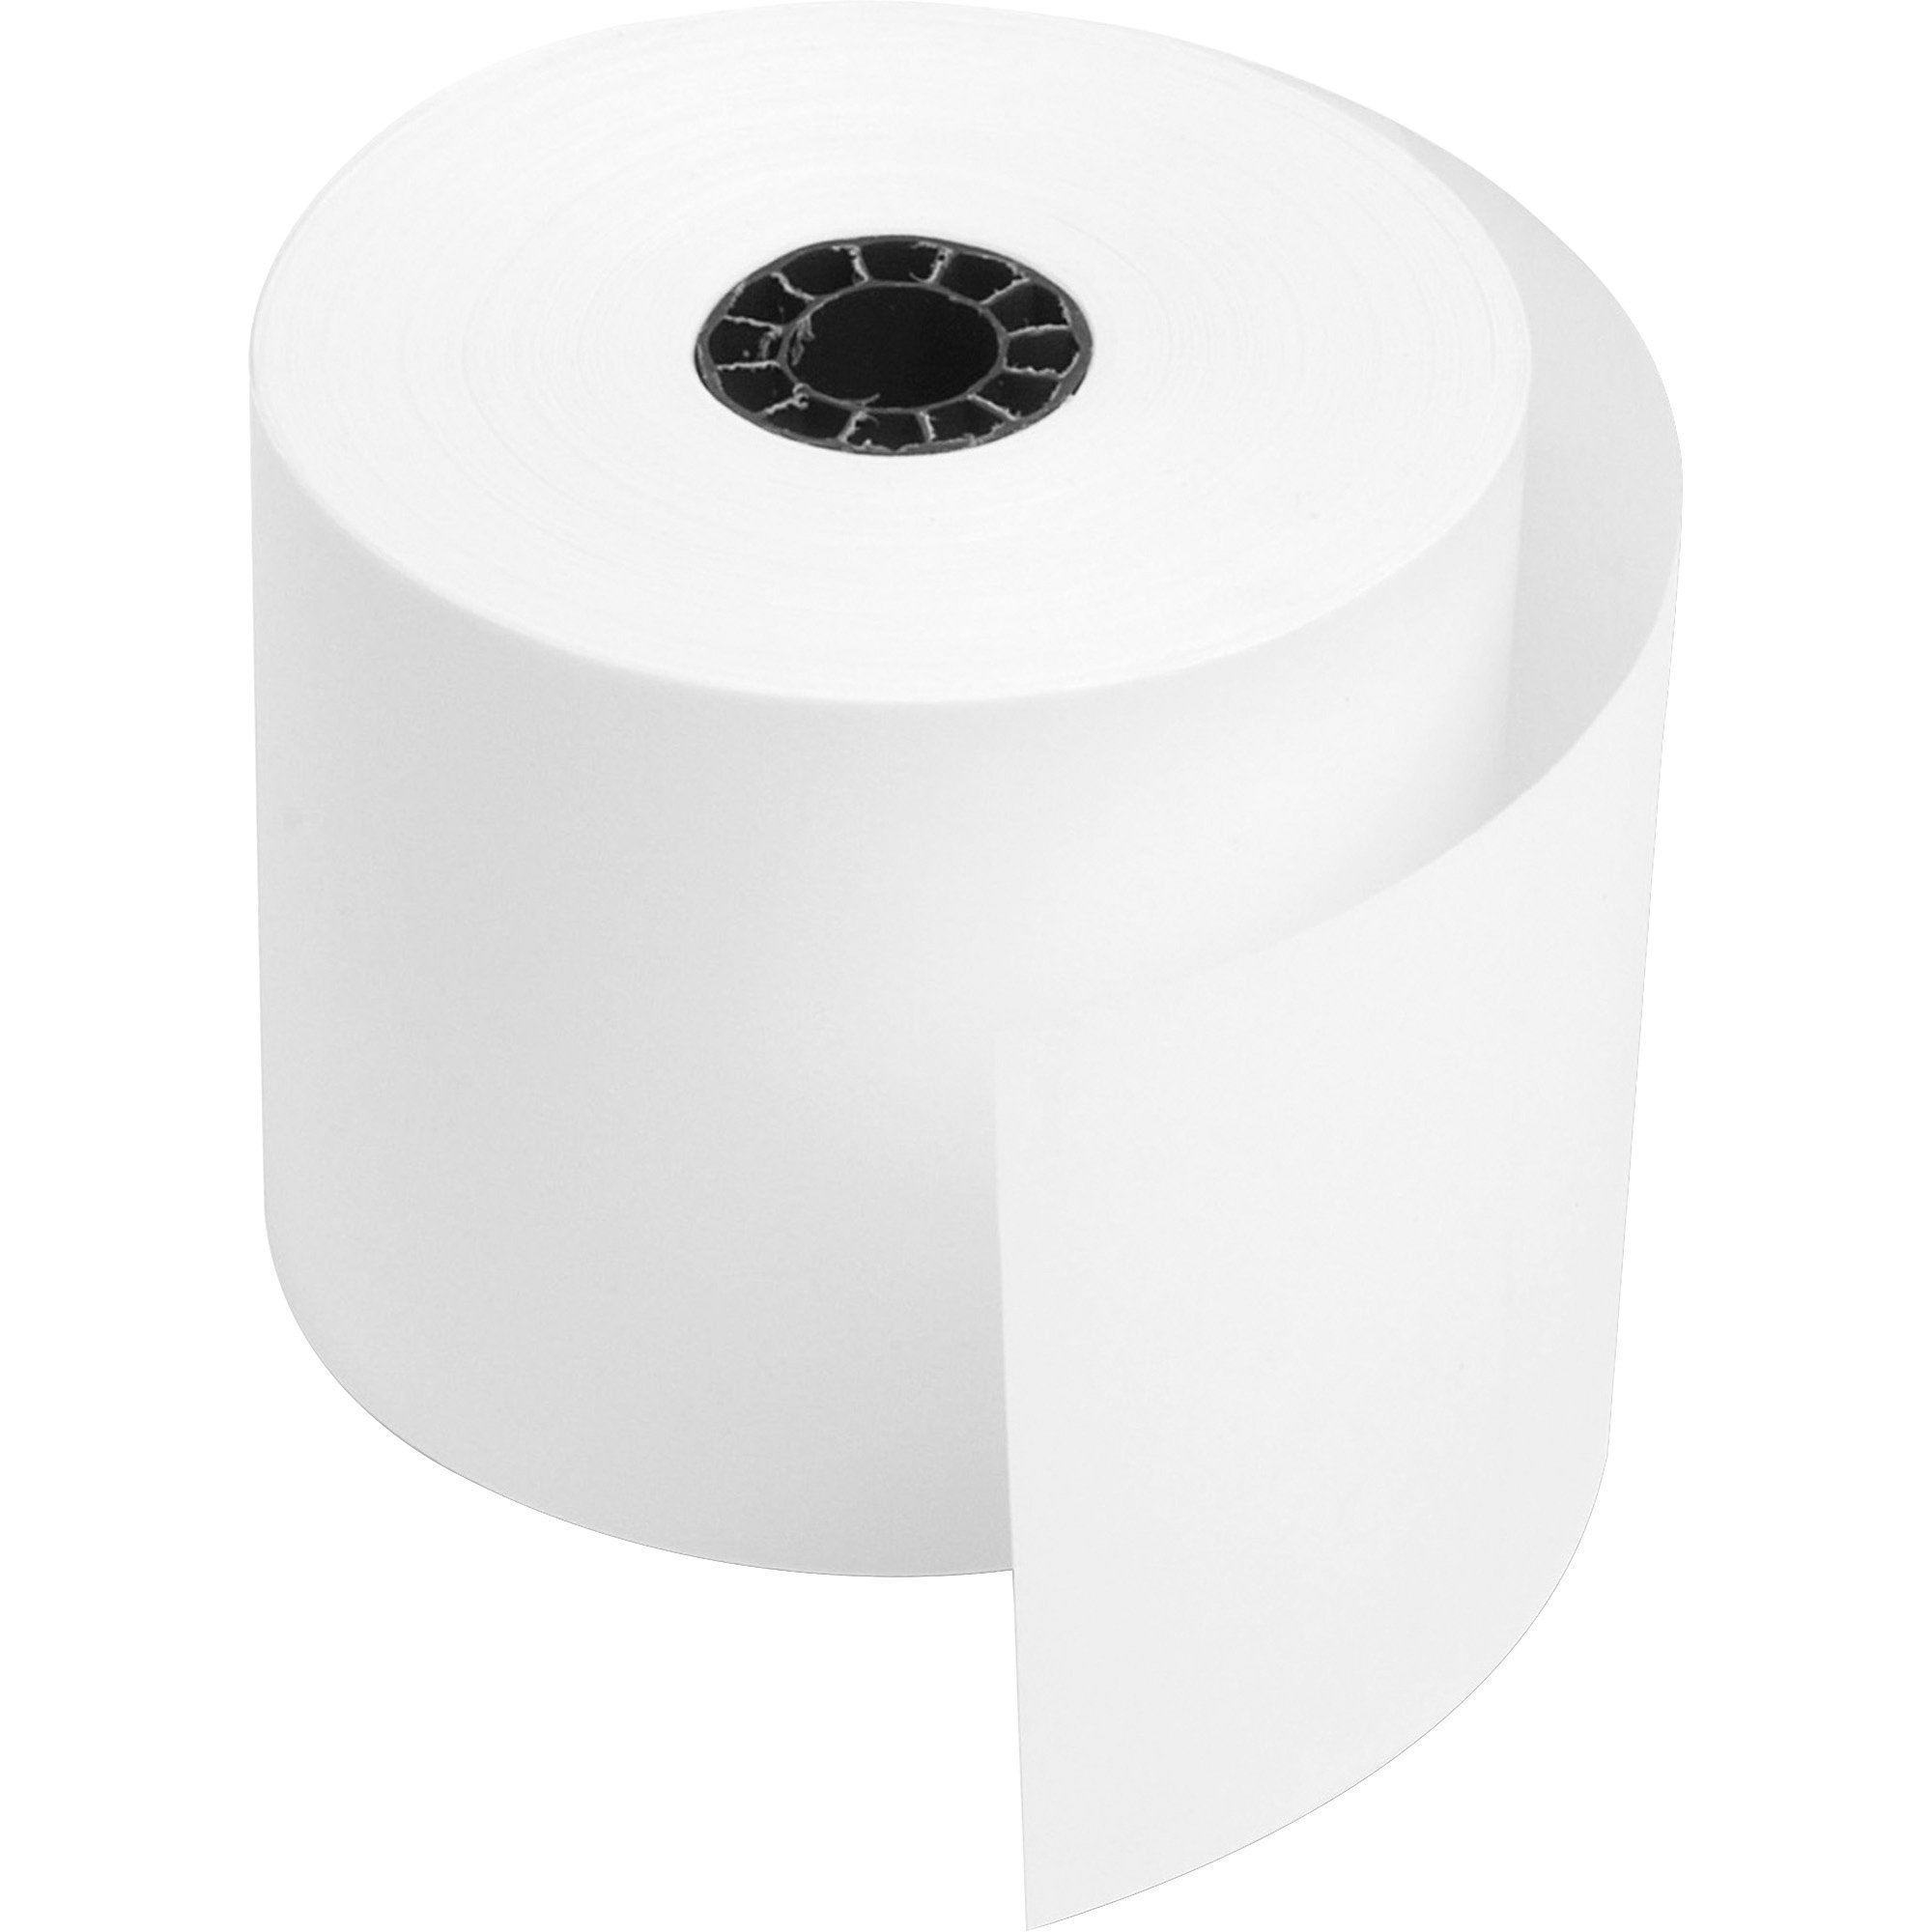 PM Company Perfection One Ply Light Weight Bond Paper Rolls, 2.25'' x 200 Feet, 5 Rolls Per Pack (08811)